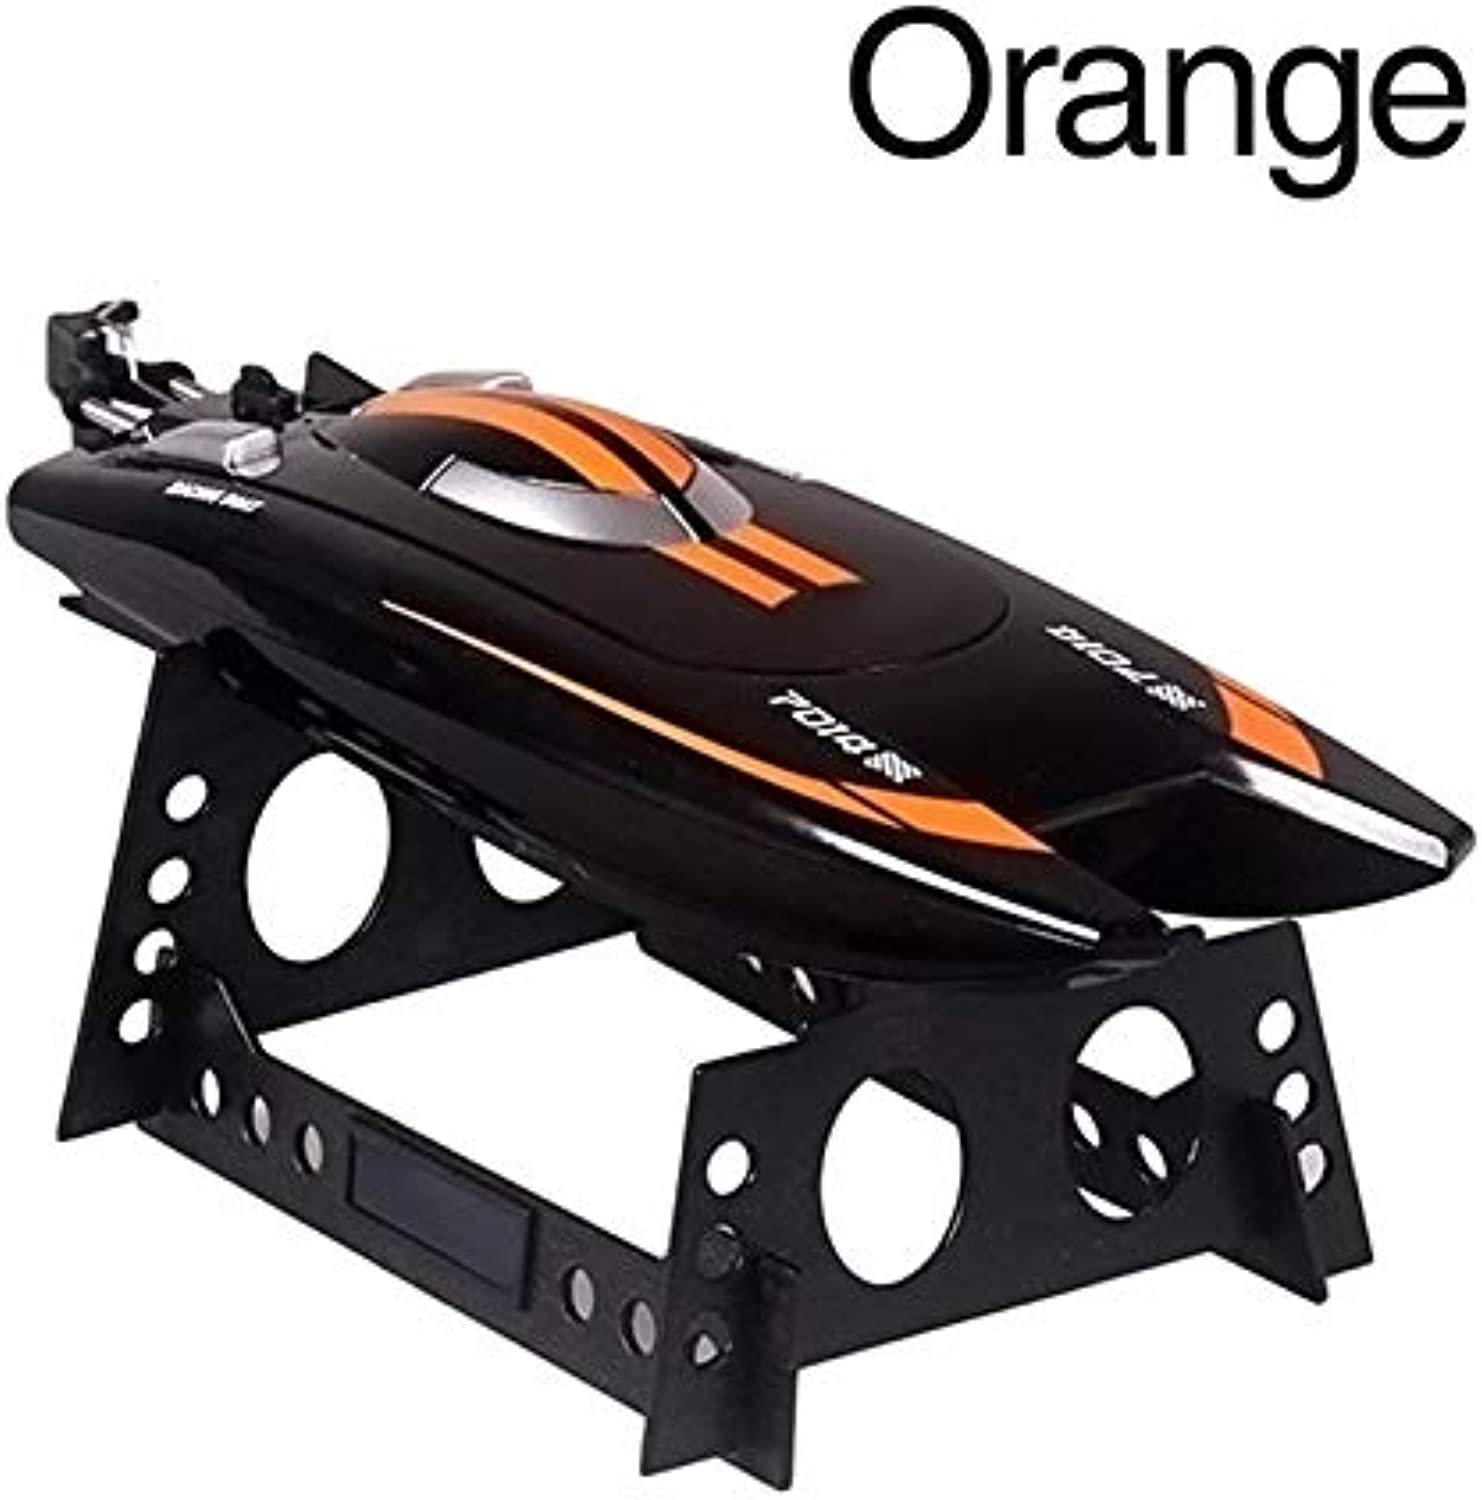 Generic Remote Radio Control servo Speedboat with Super Water Cooled Motor 2.4G Speed Rowing Boat 35x9.5x5.6CM orange